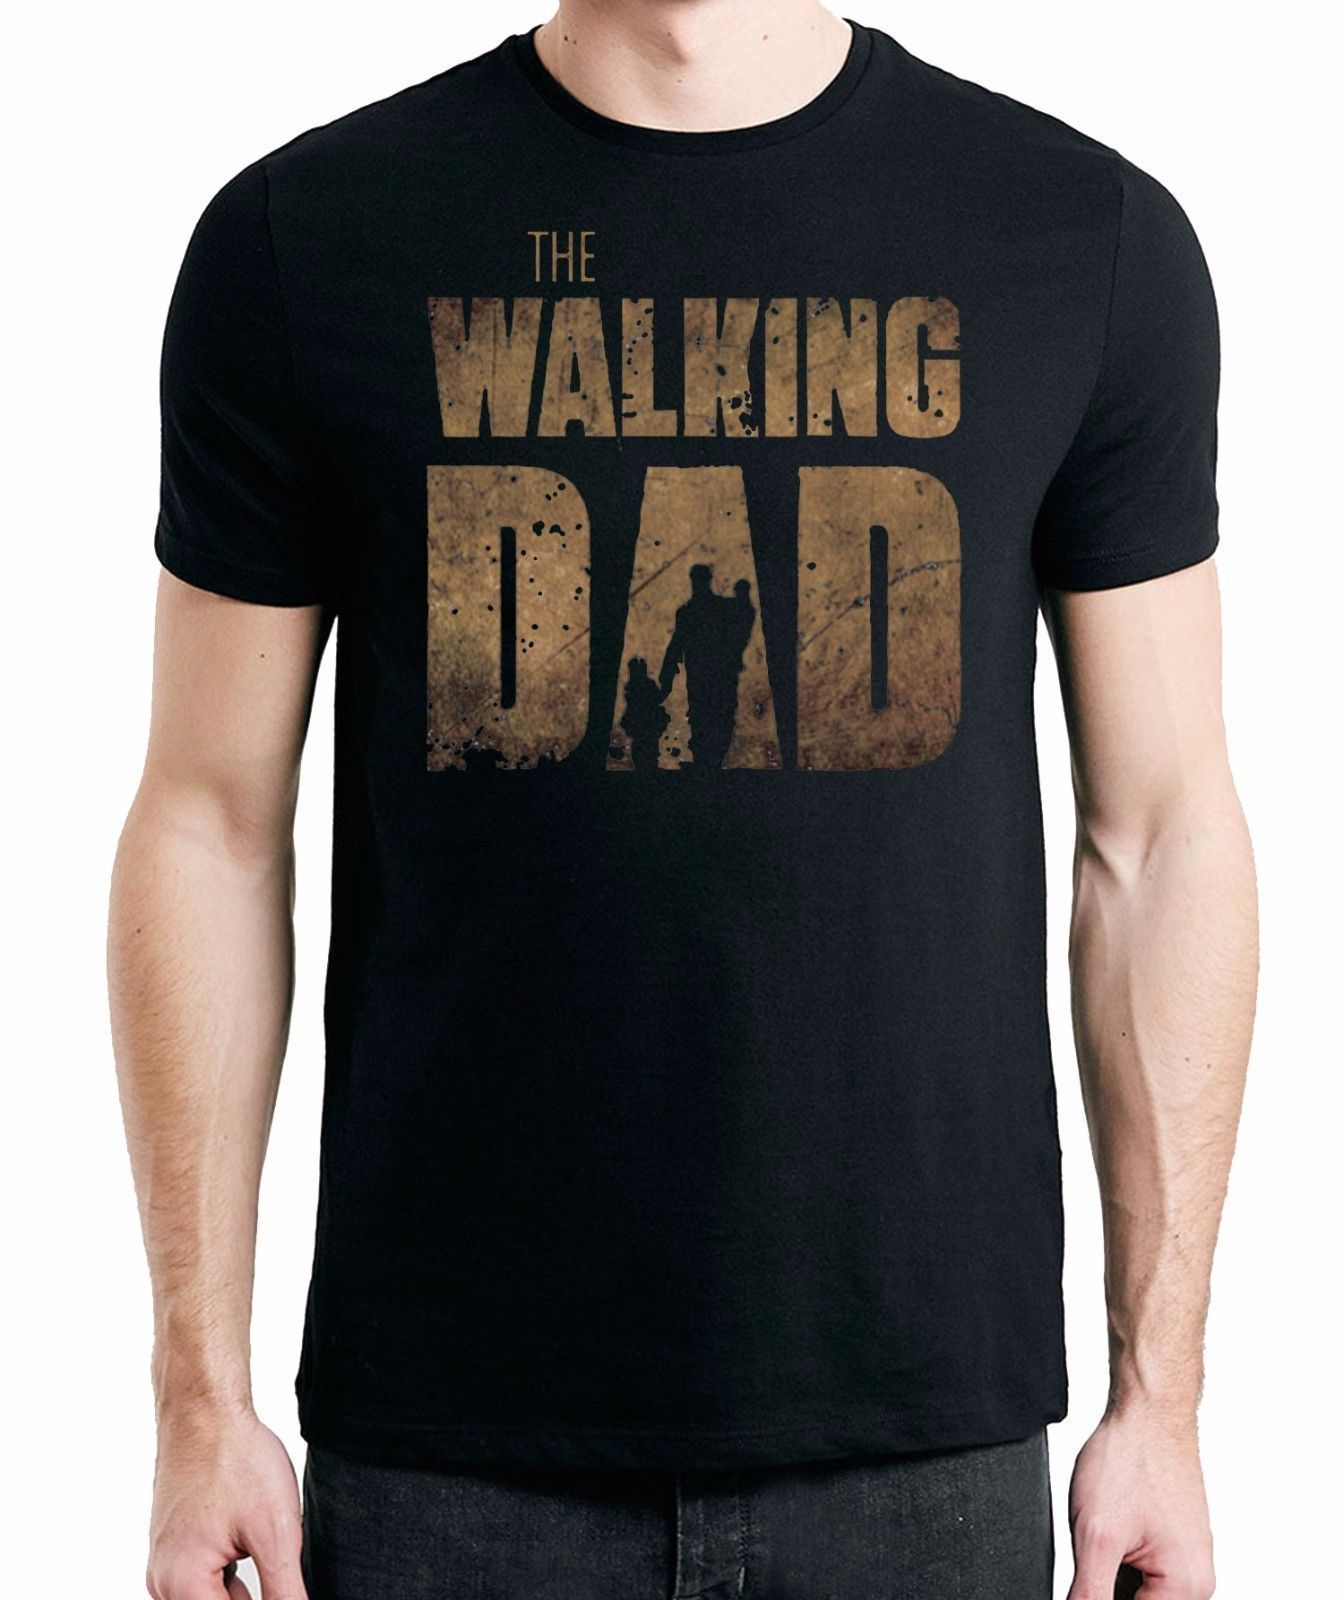 New The Walking Dad Fathers Day Birthday T-Shirt Tees Size S-3XL Summer Short Sleeves Cotton T Shirt top tee